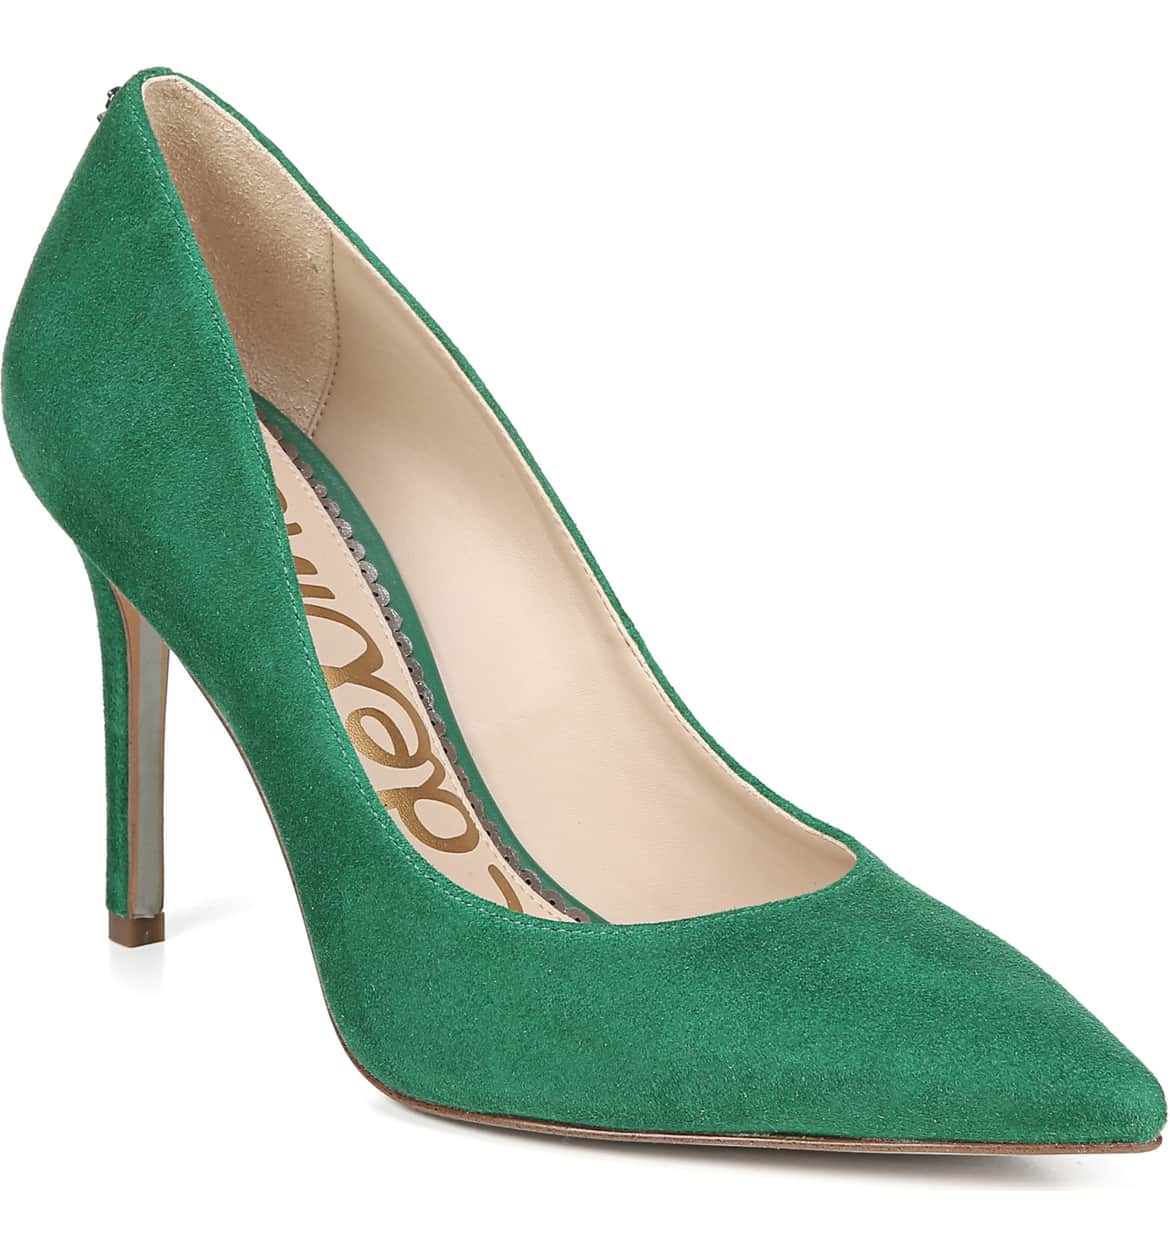 A classic stiletto adds leg-lengthening lift and timeless appeal to an elegant pointy-toe pump. $119{ }(Image: Nordstrom){ }